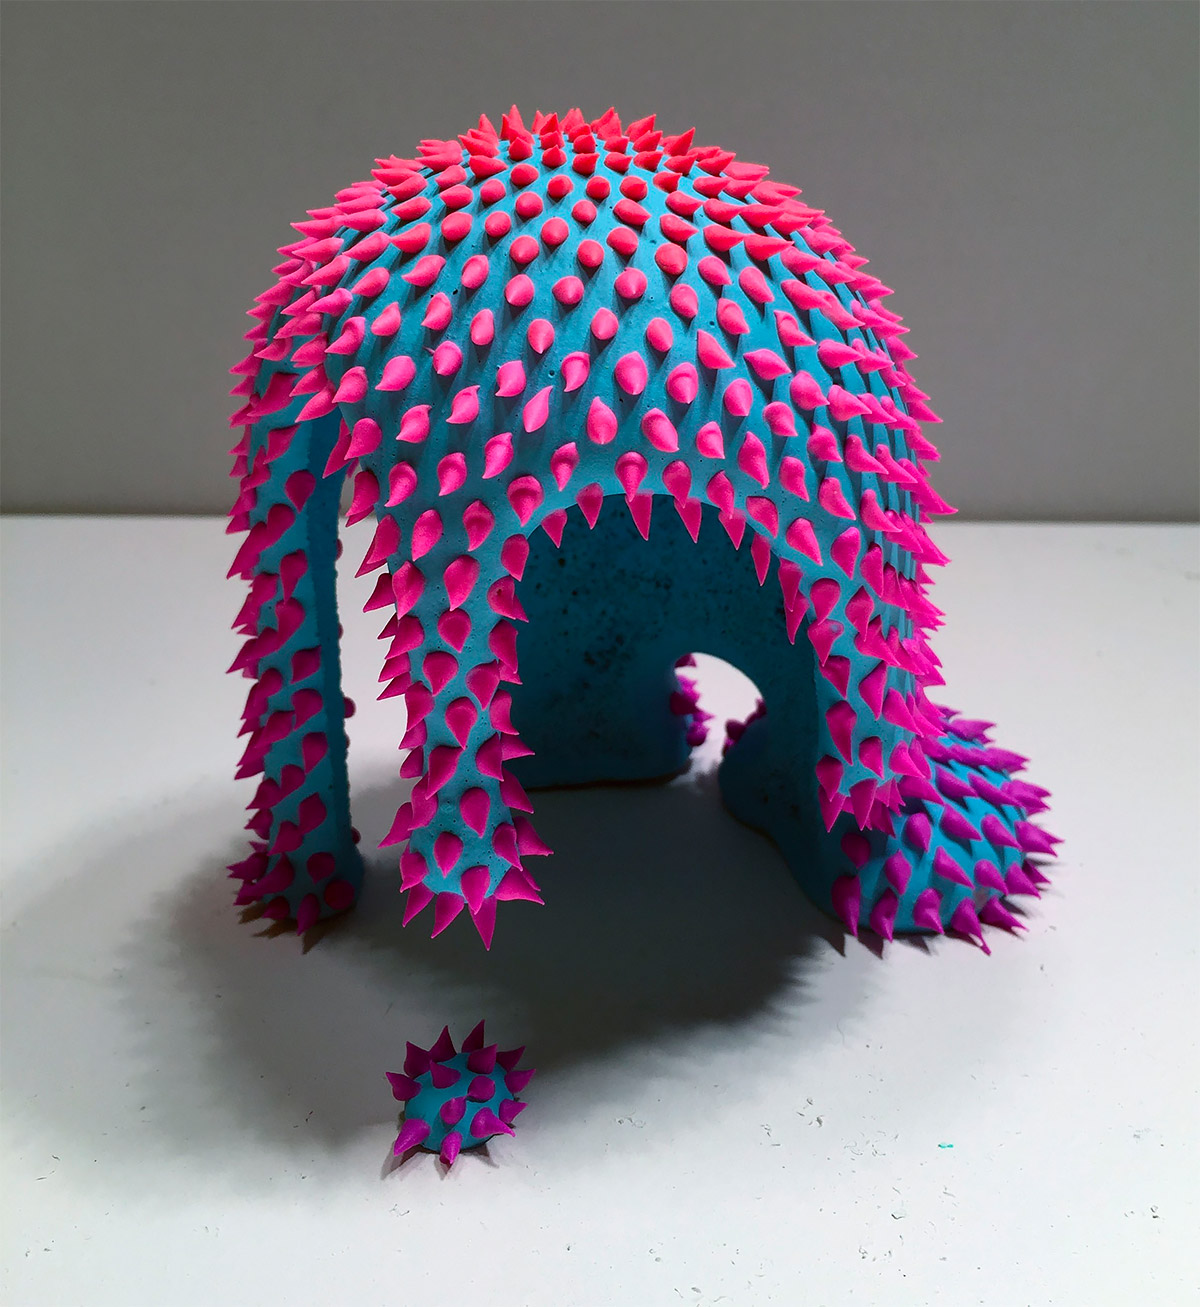 Squishes, Drips & Blobs: Bizarre Sculptures by Dan Lam